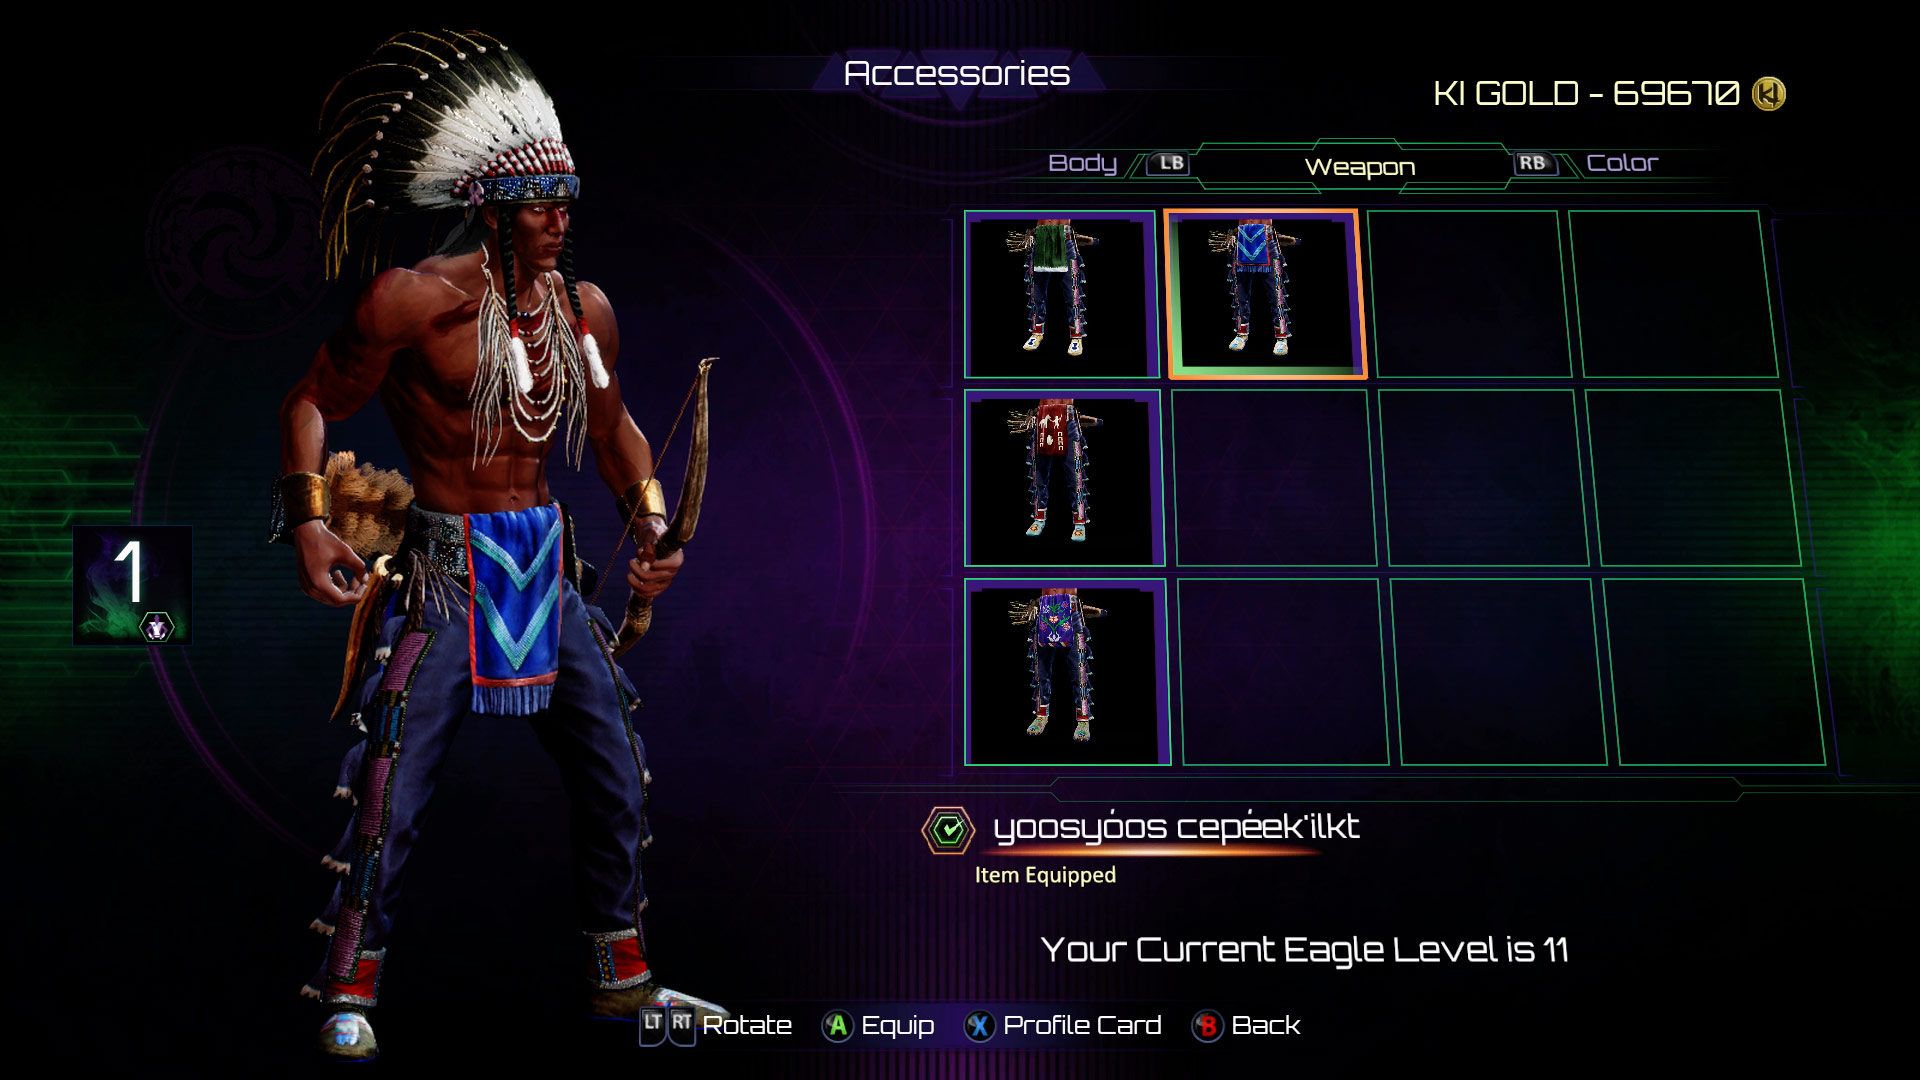 Eagle's accessories in Killer Instinct 8 out of 8 image gallery